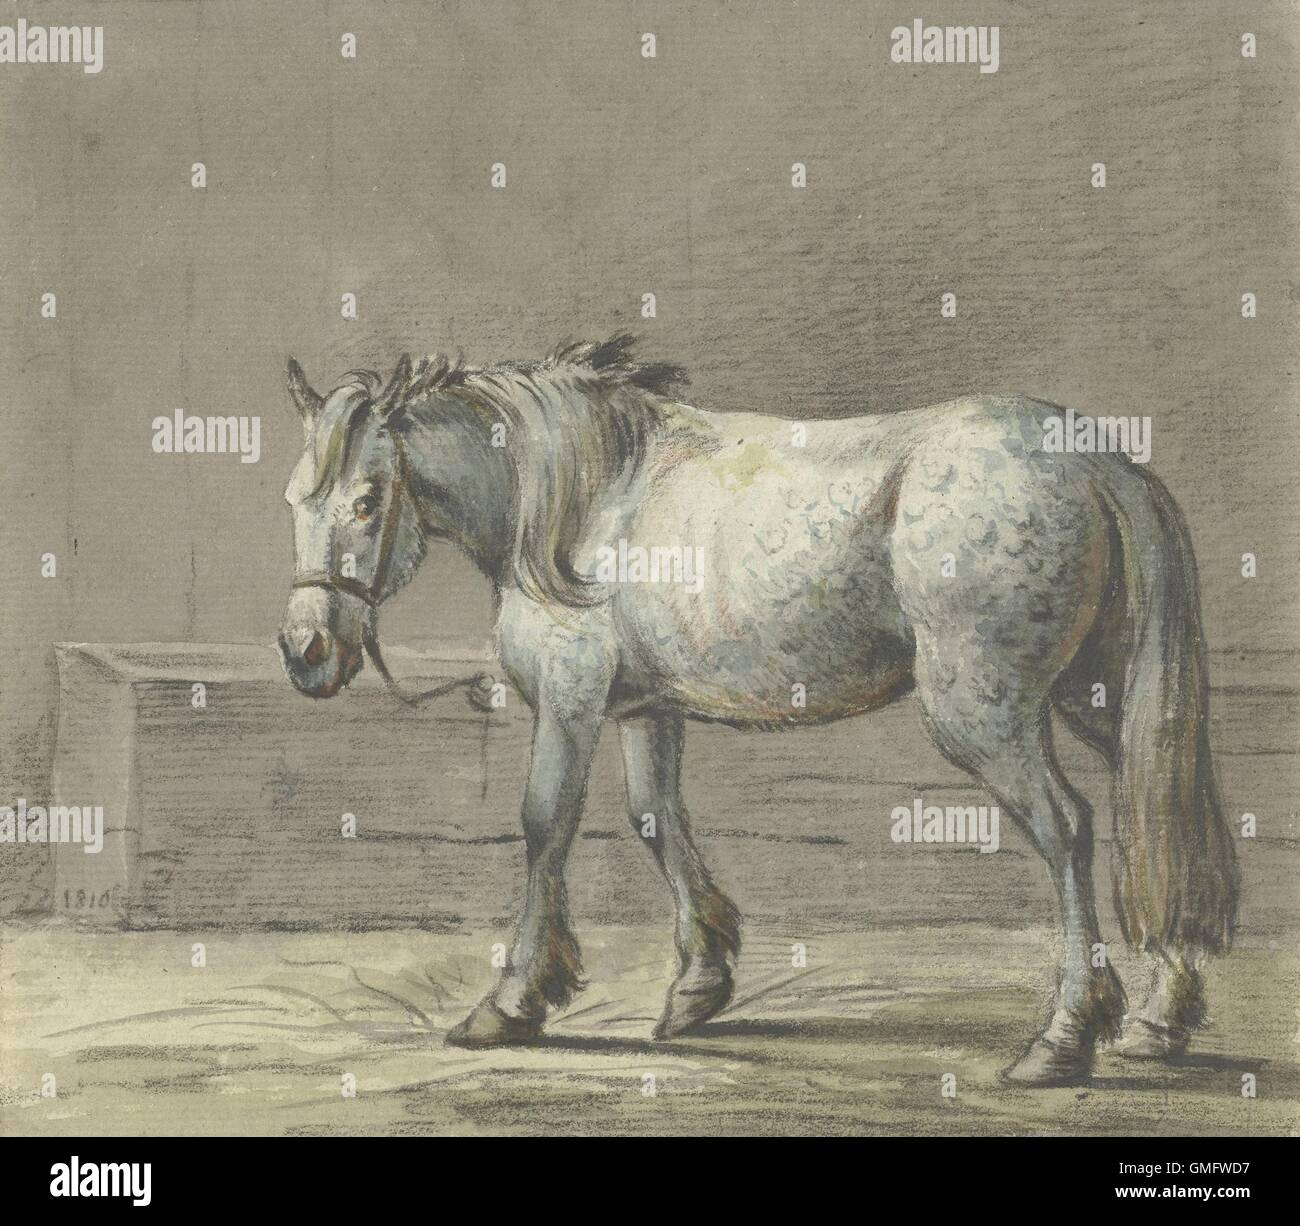 Standing Horse in a Stall, Facing Left, by Jean Bernard, 1810-16, Dutch watercolor painting. (BSLOC_2016_1_278) - Stock Image